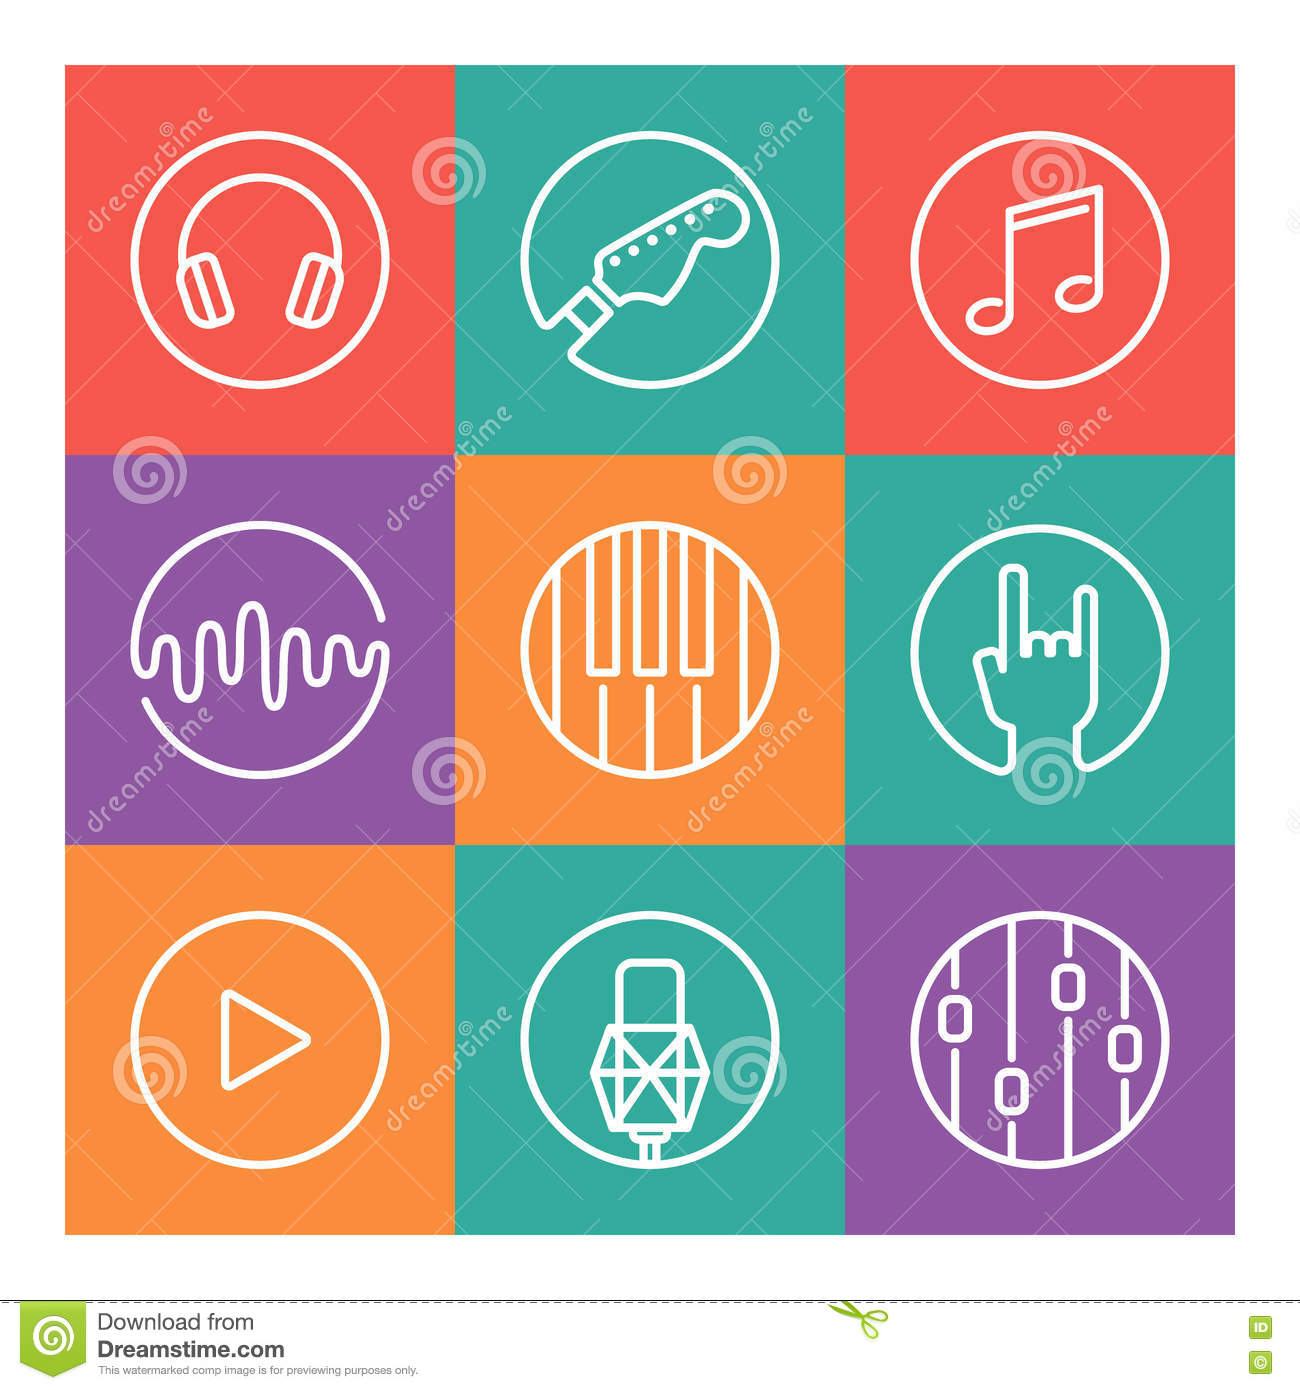 Collection of vector music or recording studio icons